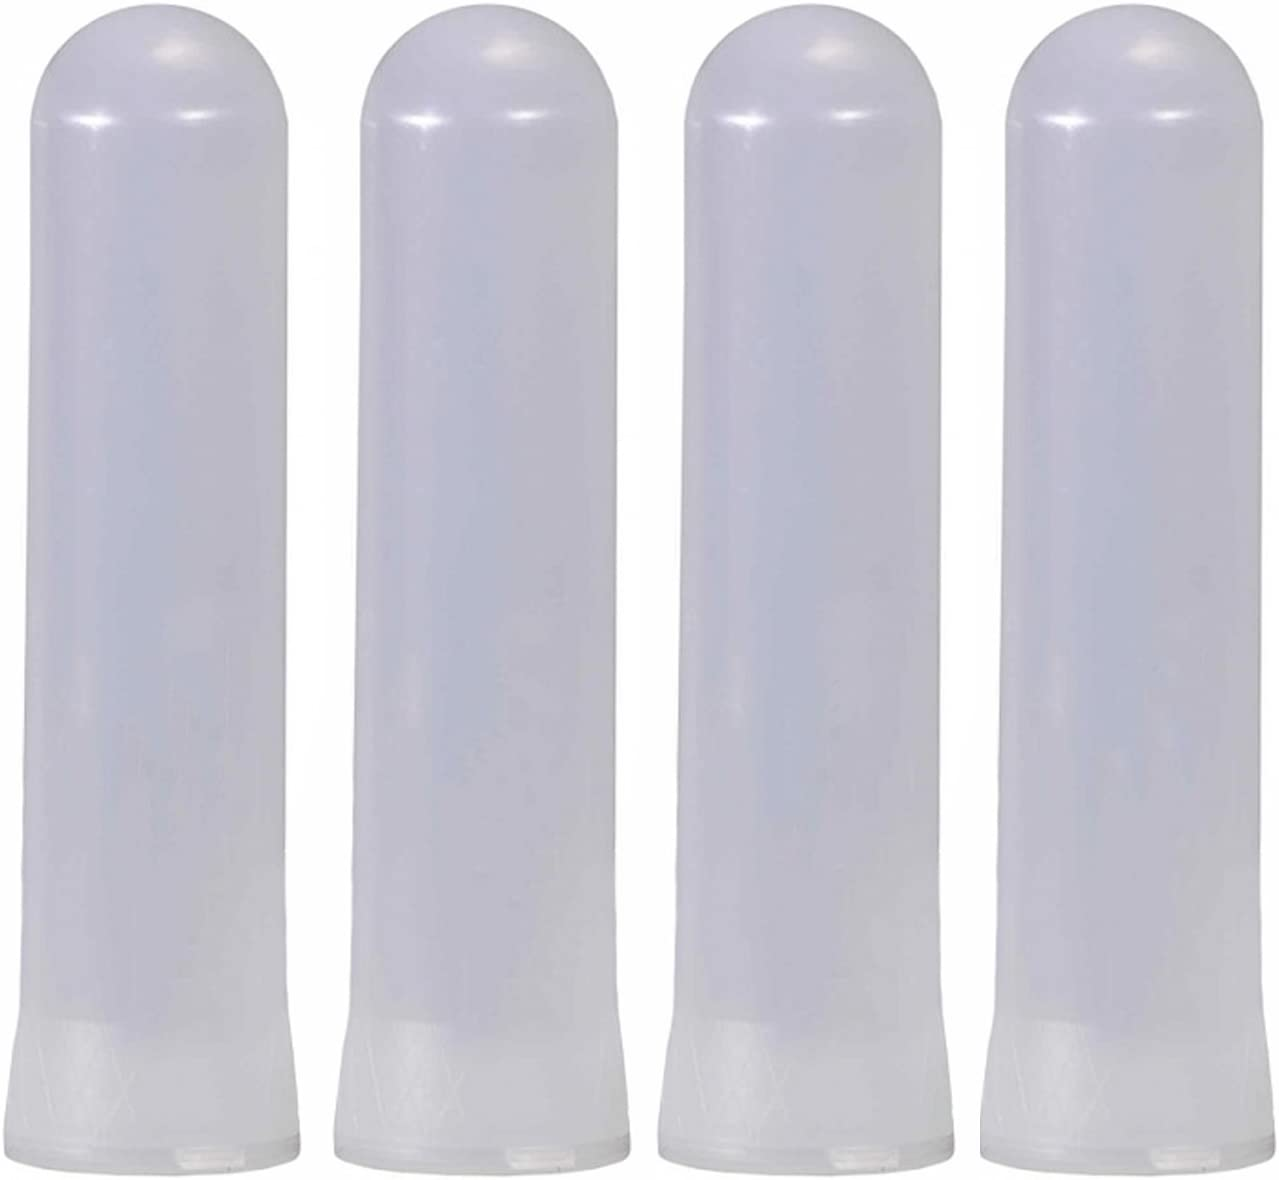 Tippmann Paintball Heavy Duty 140 Round Guppy Pods, Clear, Pack of 4